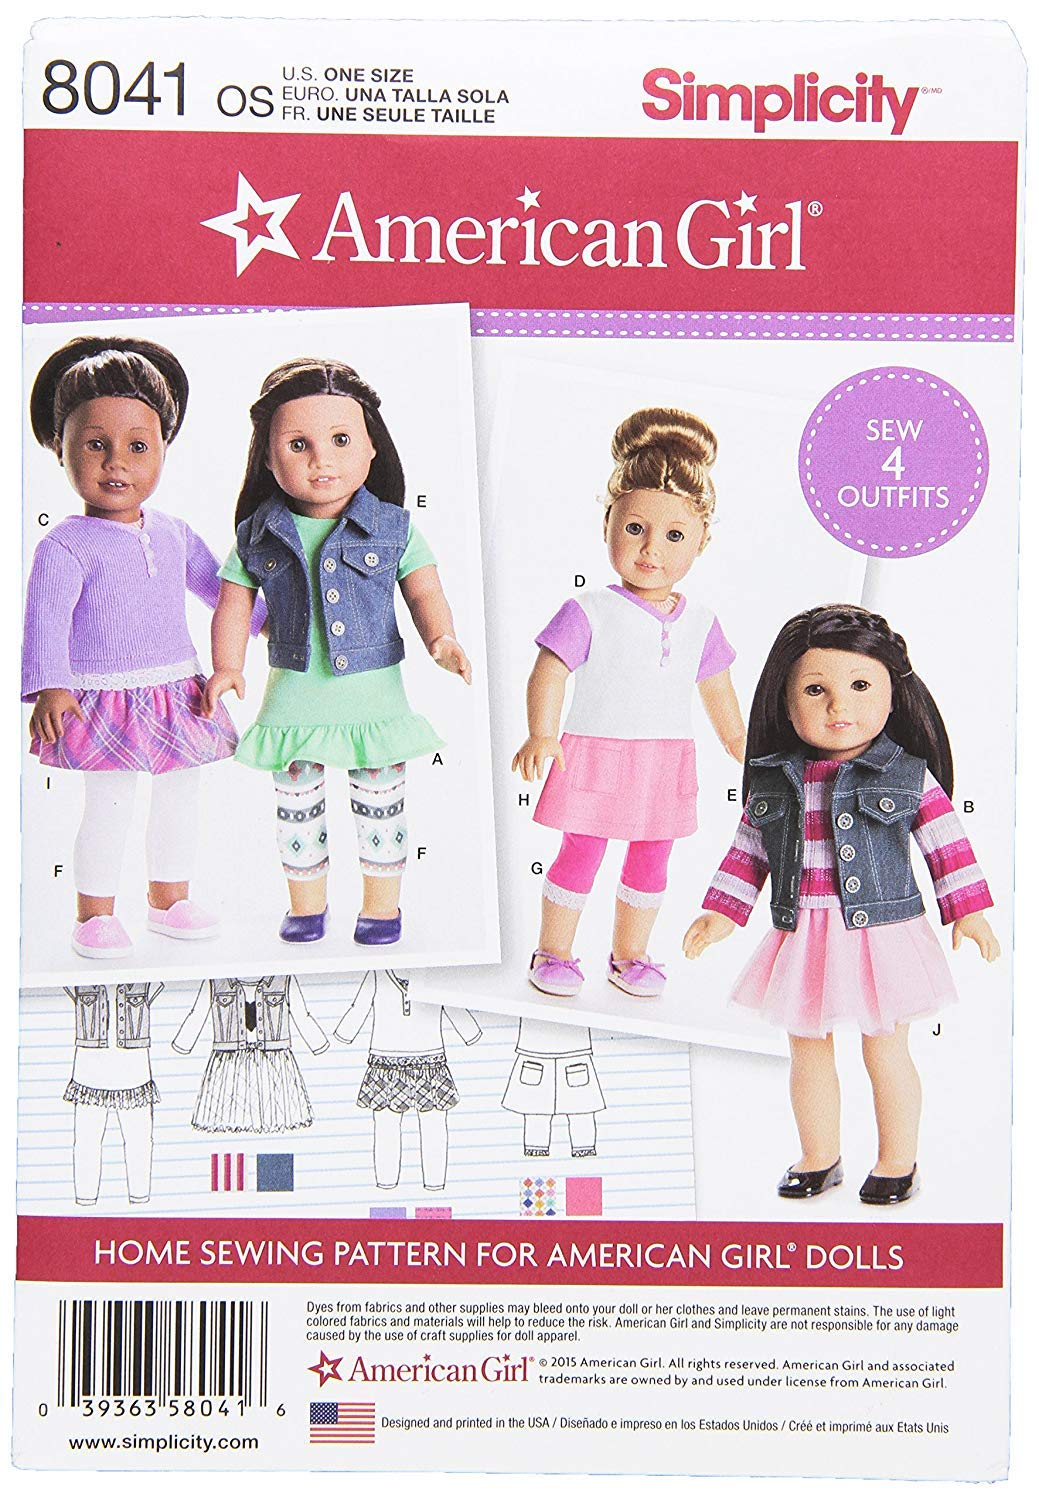 Amazon.com: Simplicity Patterns American Girl Doll Clothes for 18 ...